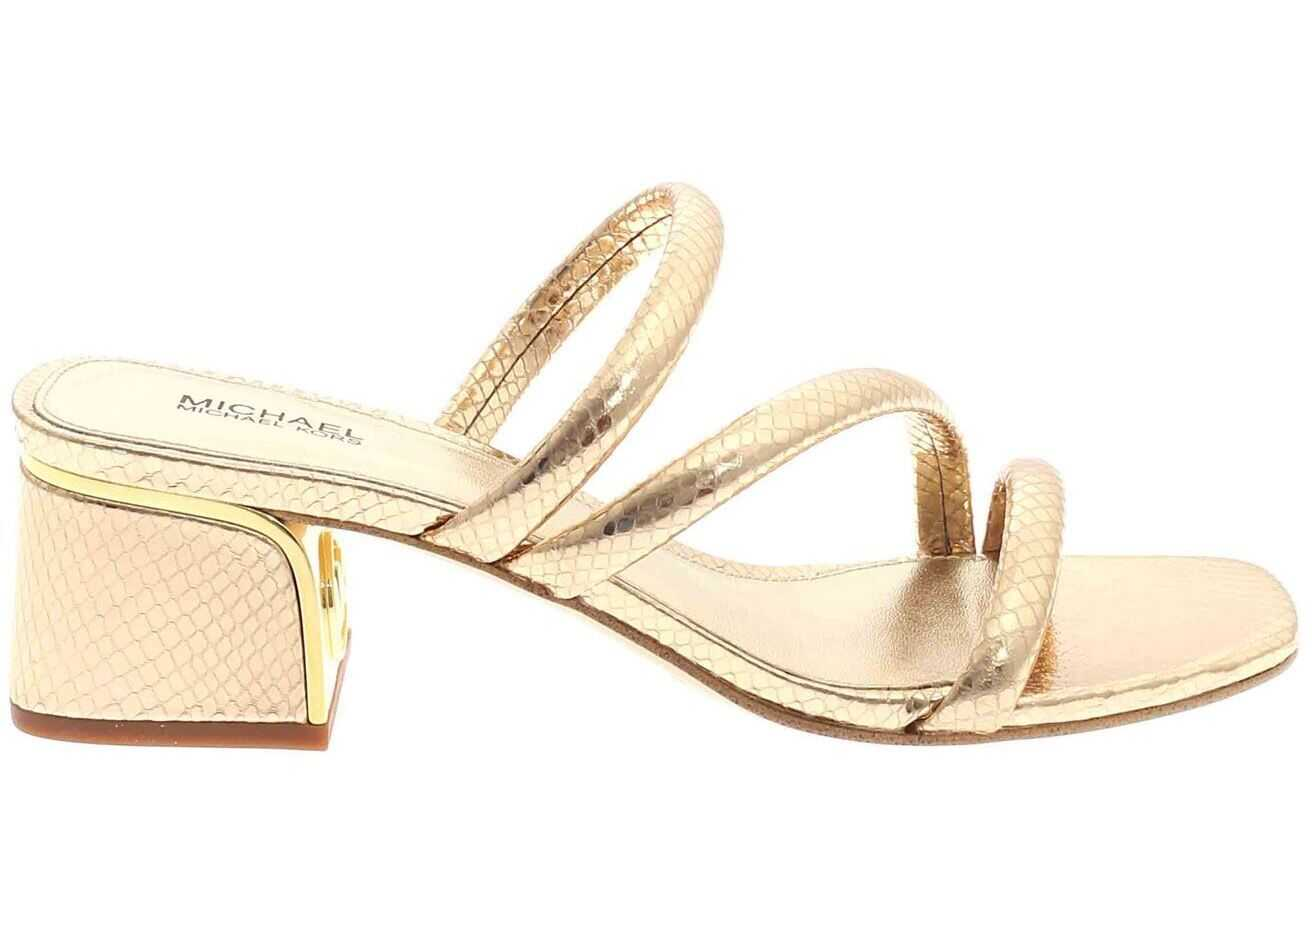 Michael Kors Mules In Gold Color 40S1LAMP2MPALEGOLD Gold imagine b-mall.ro